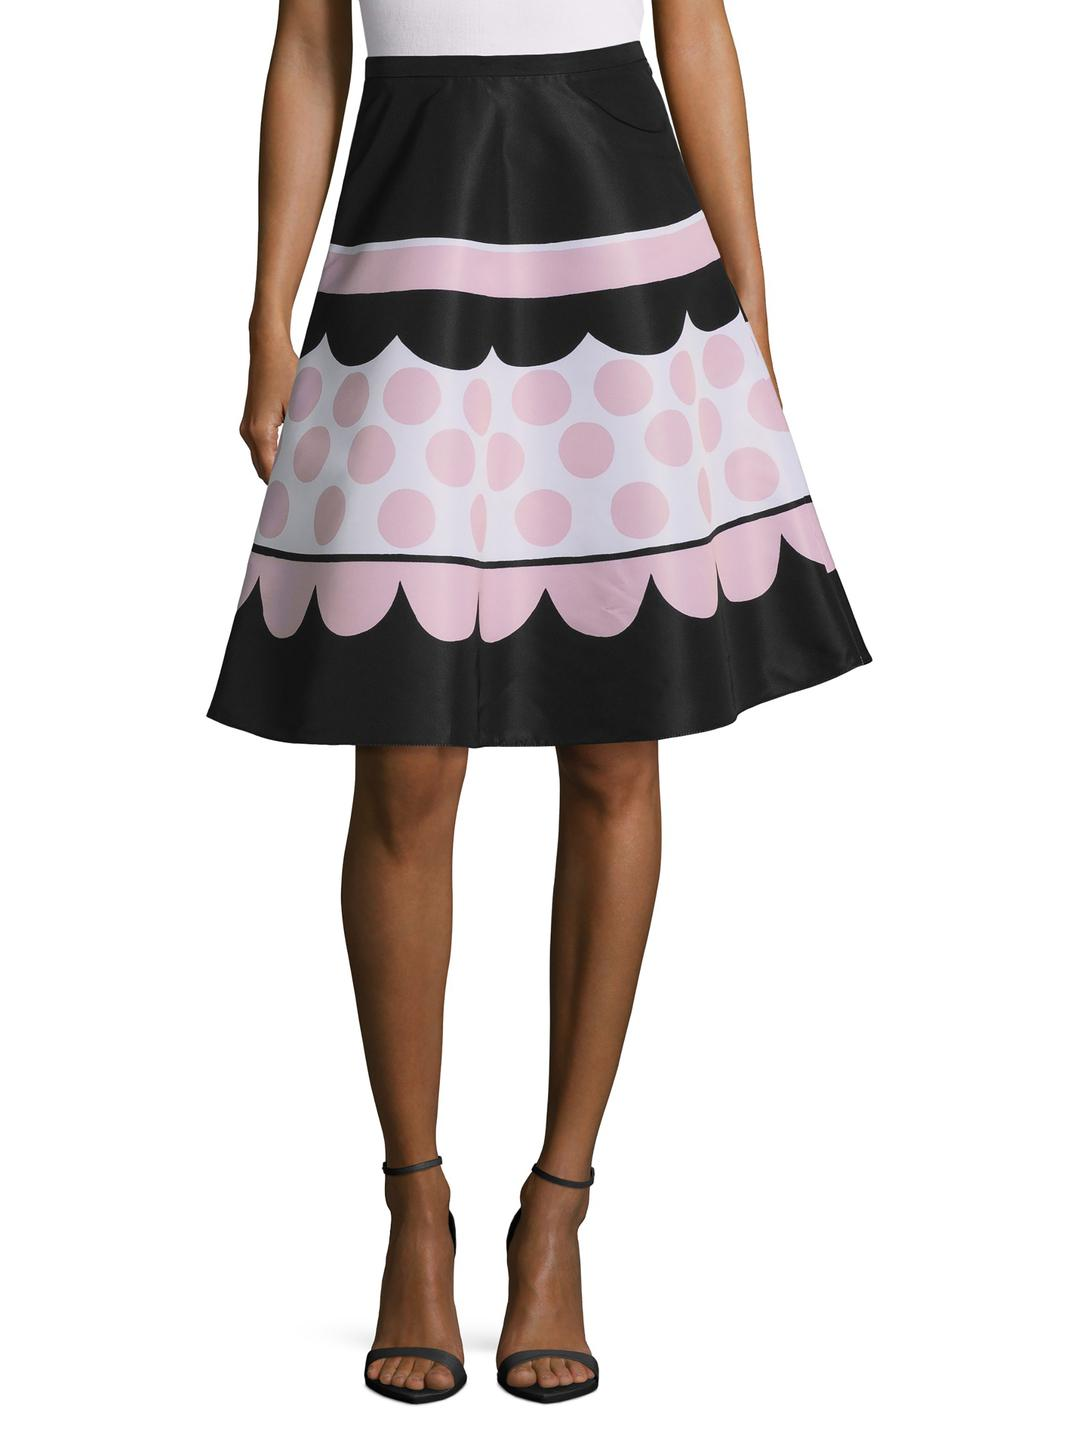 Red Valentino printed A-line skirt Popular For Sale Cheap Sale Choice YVMZpW97